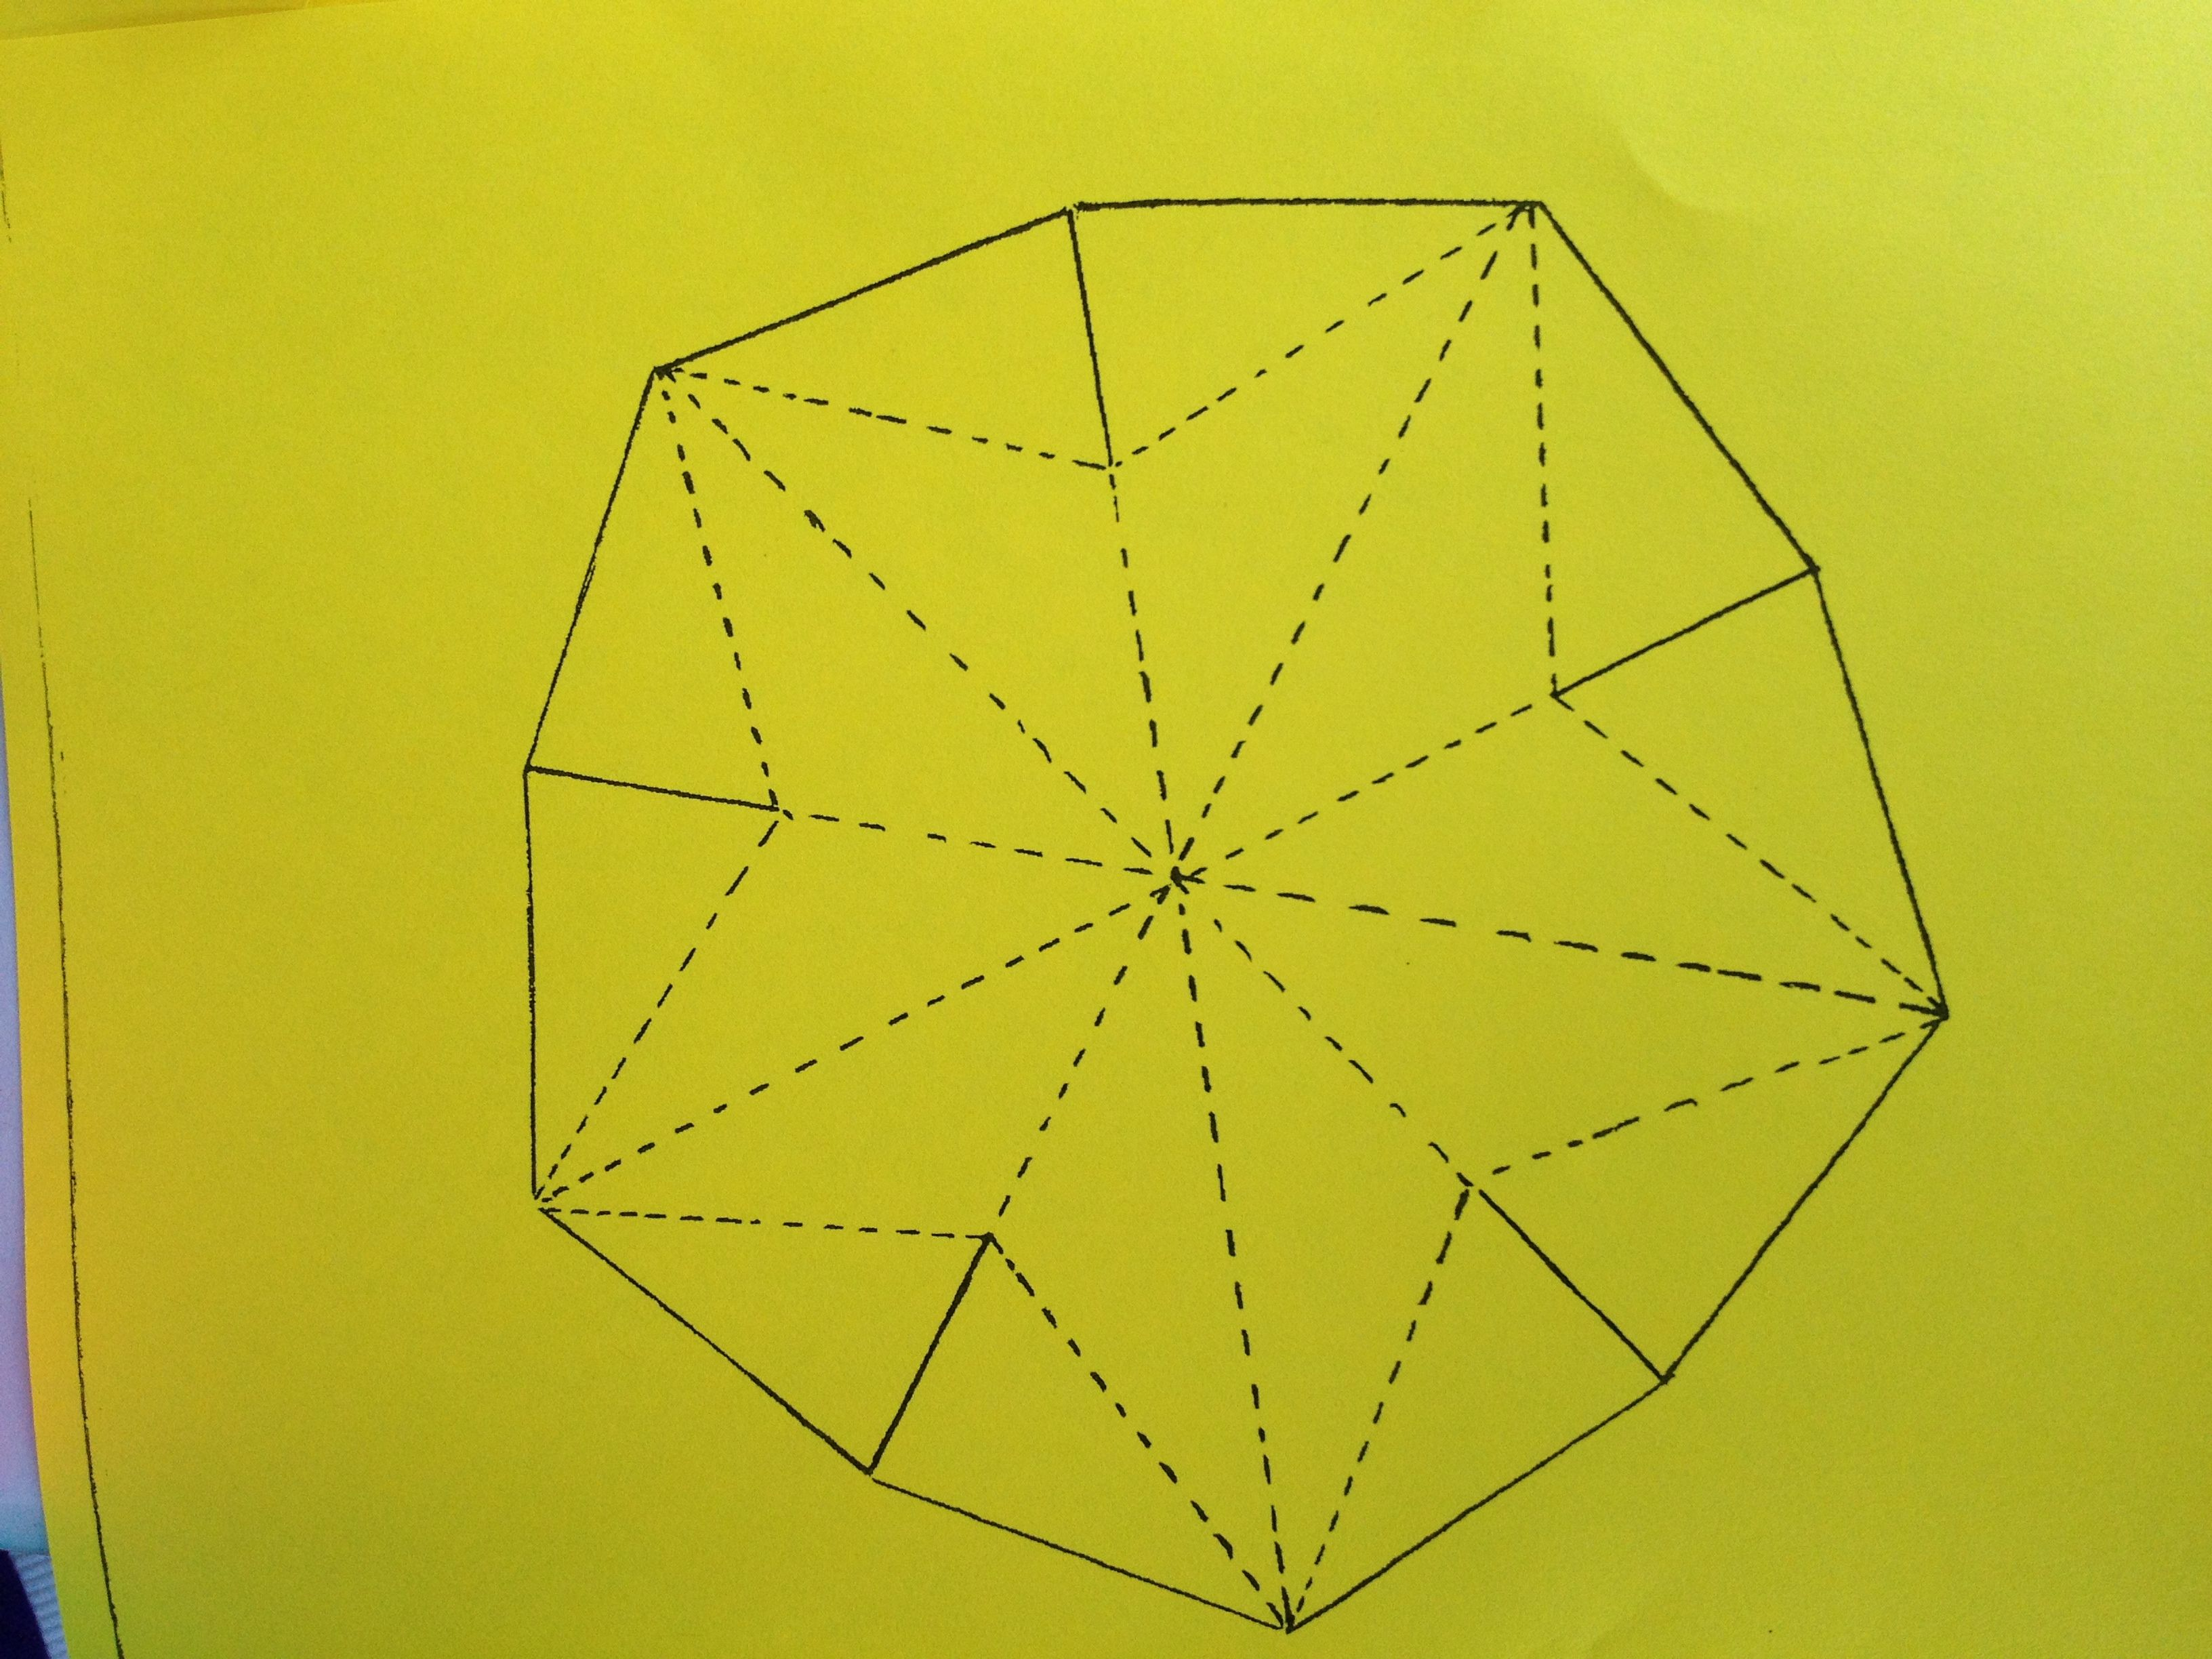 This Is The Pattern To Make The Parol, Or Star Paper